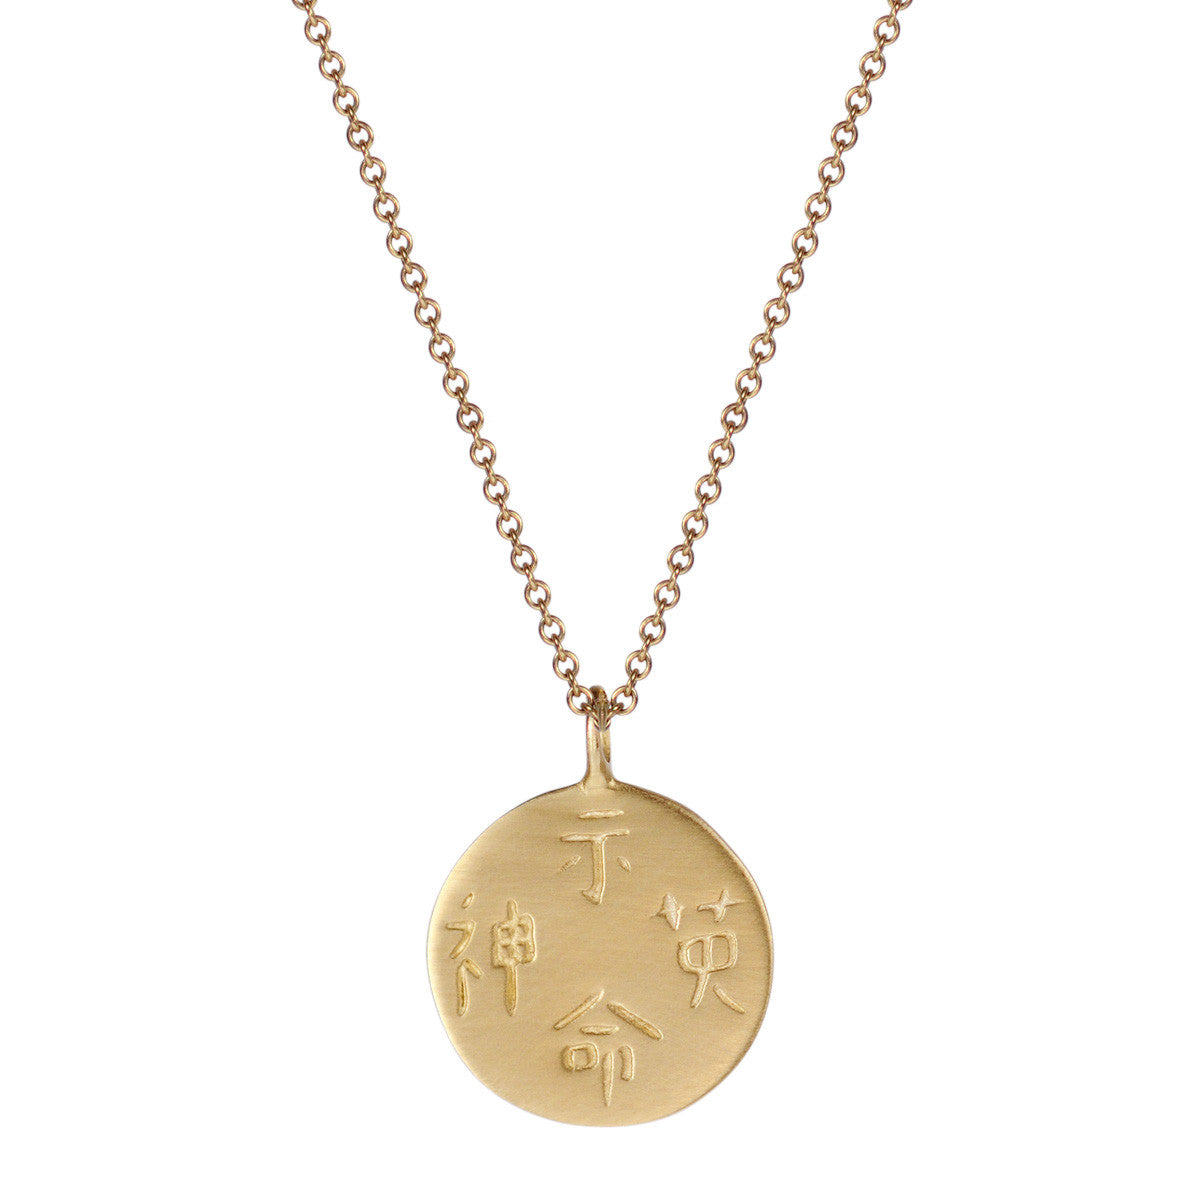 10K Gold 4 Character Chinese Pendant